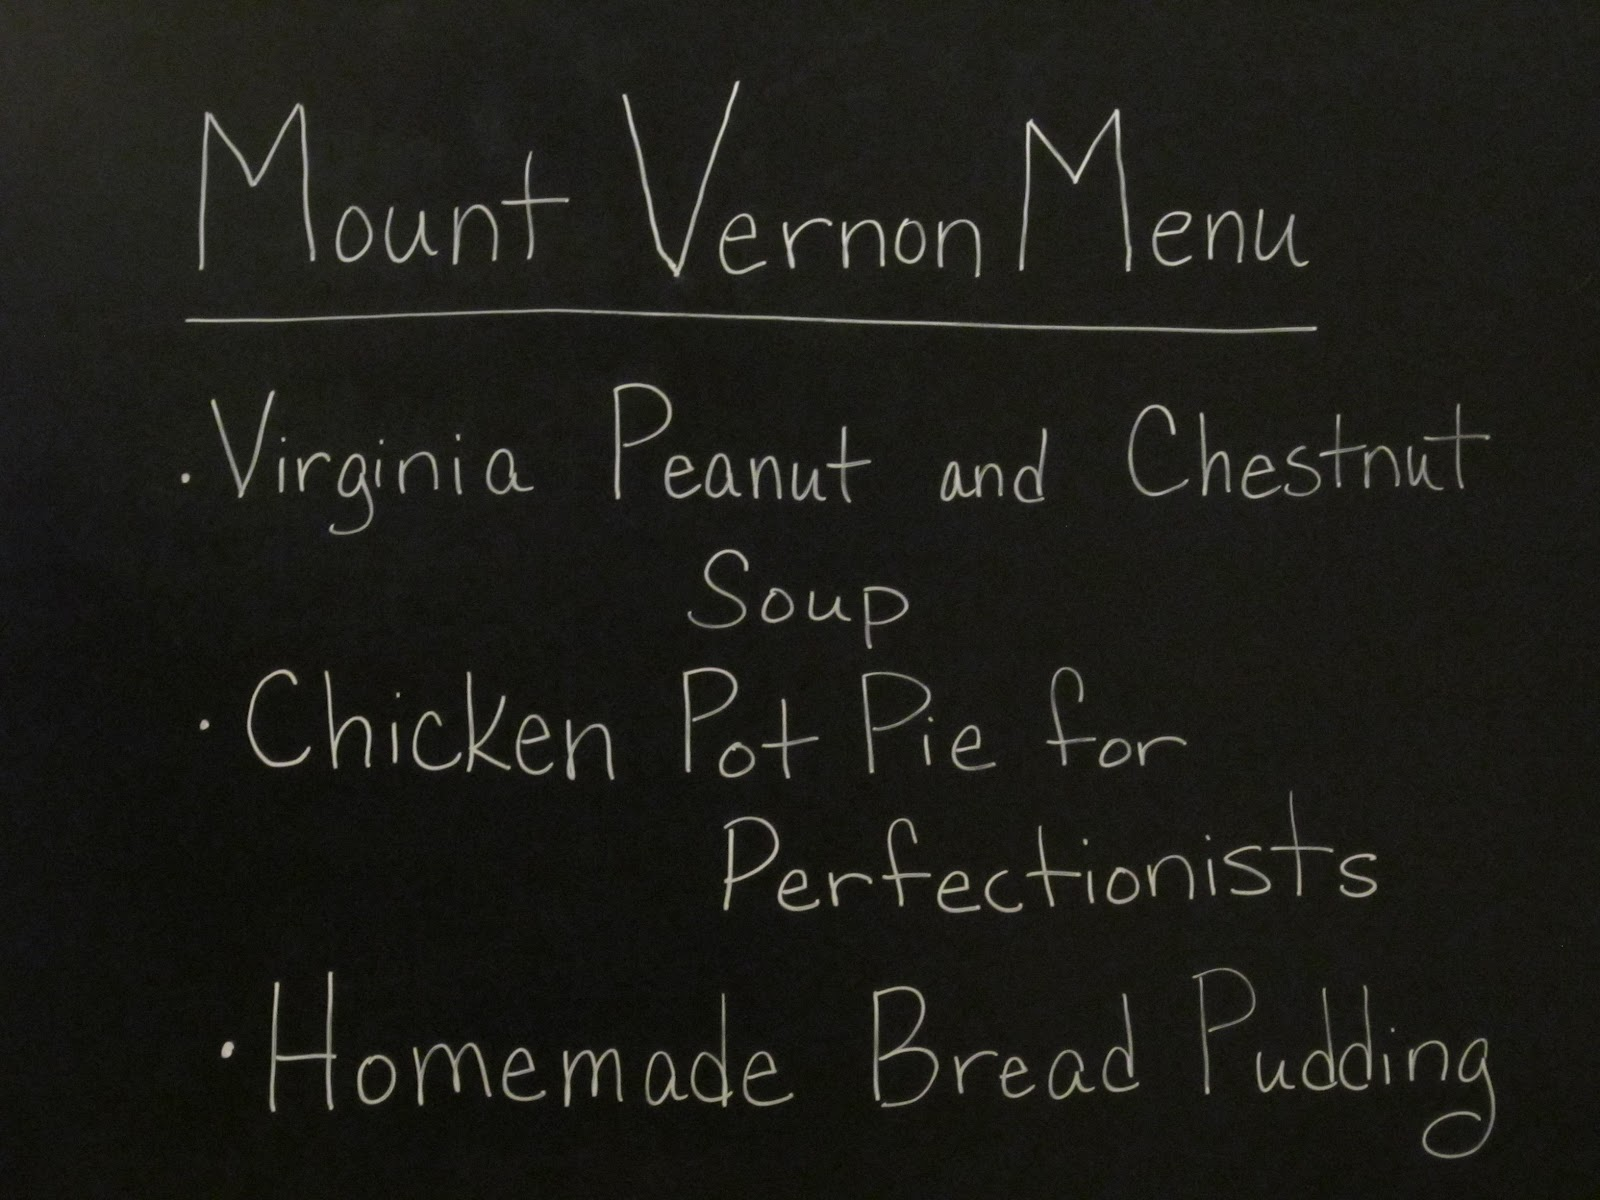 recipe from mount vernon george washington s home for virginia peanut